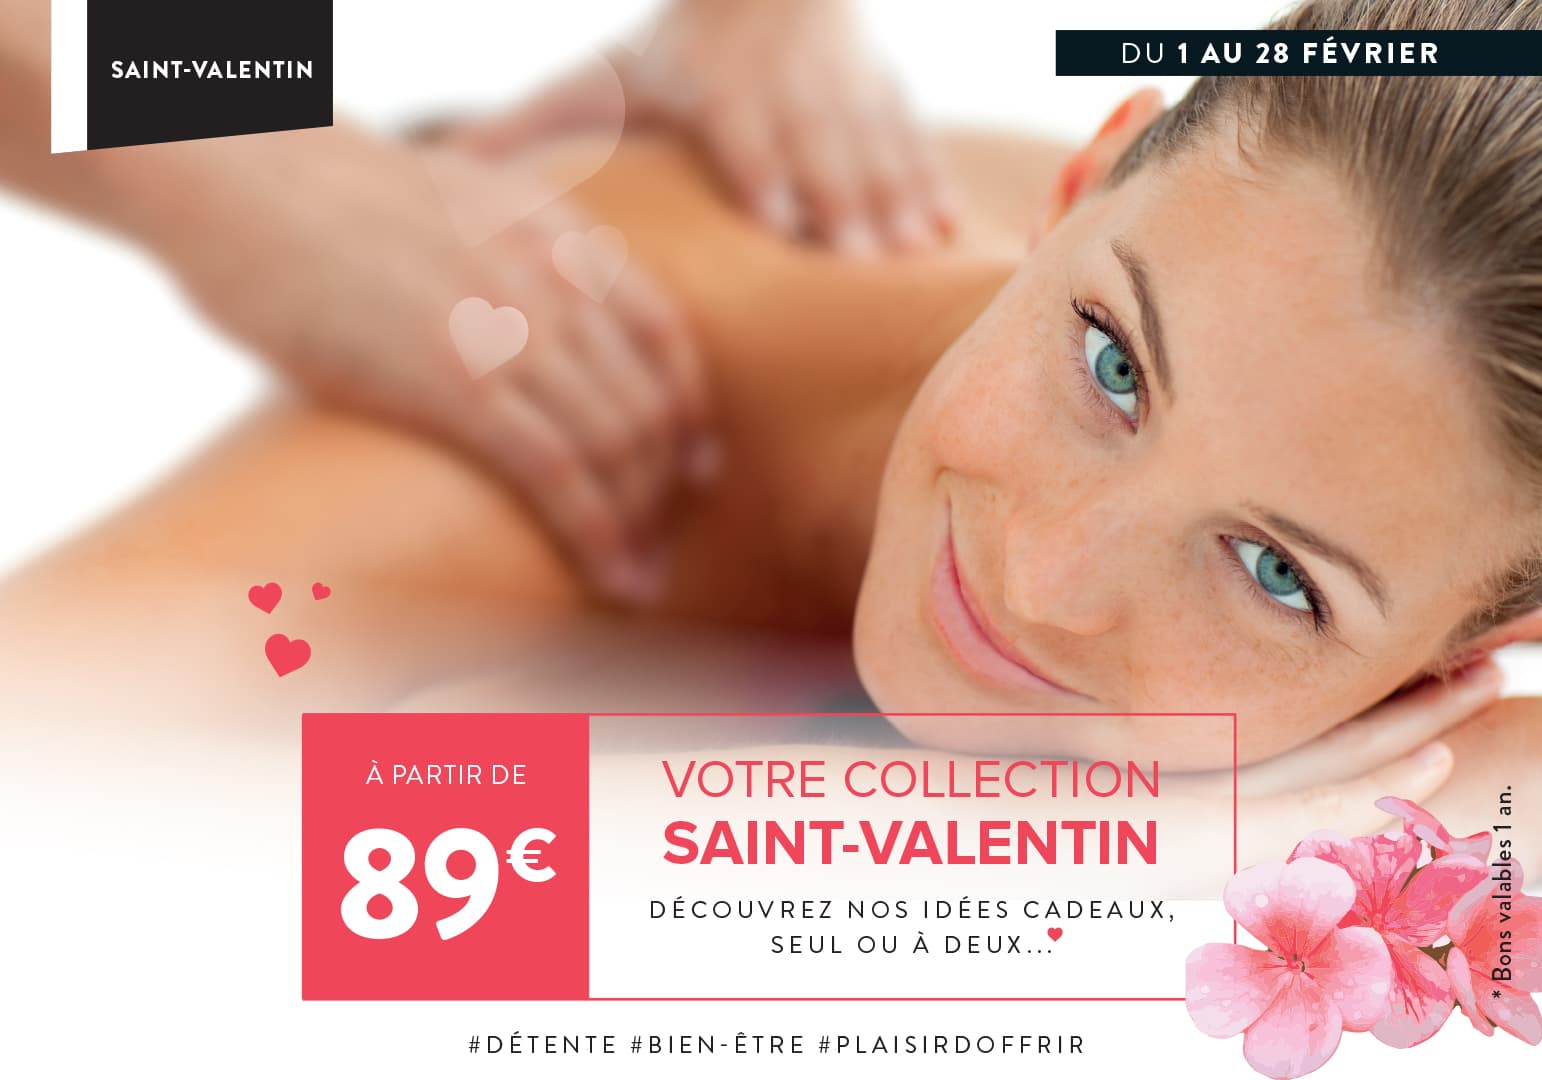 Soin du mois :  Collection Saint-Valentin